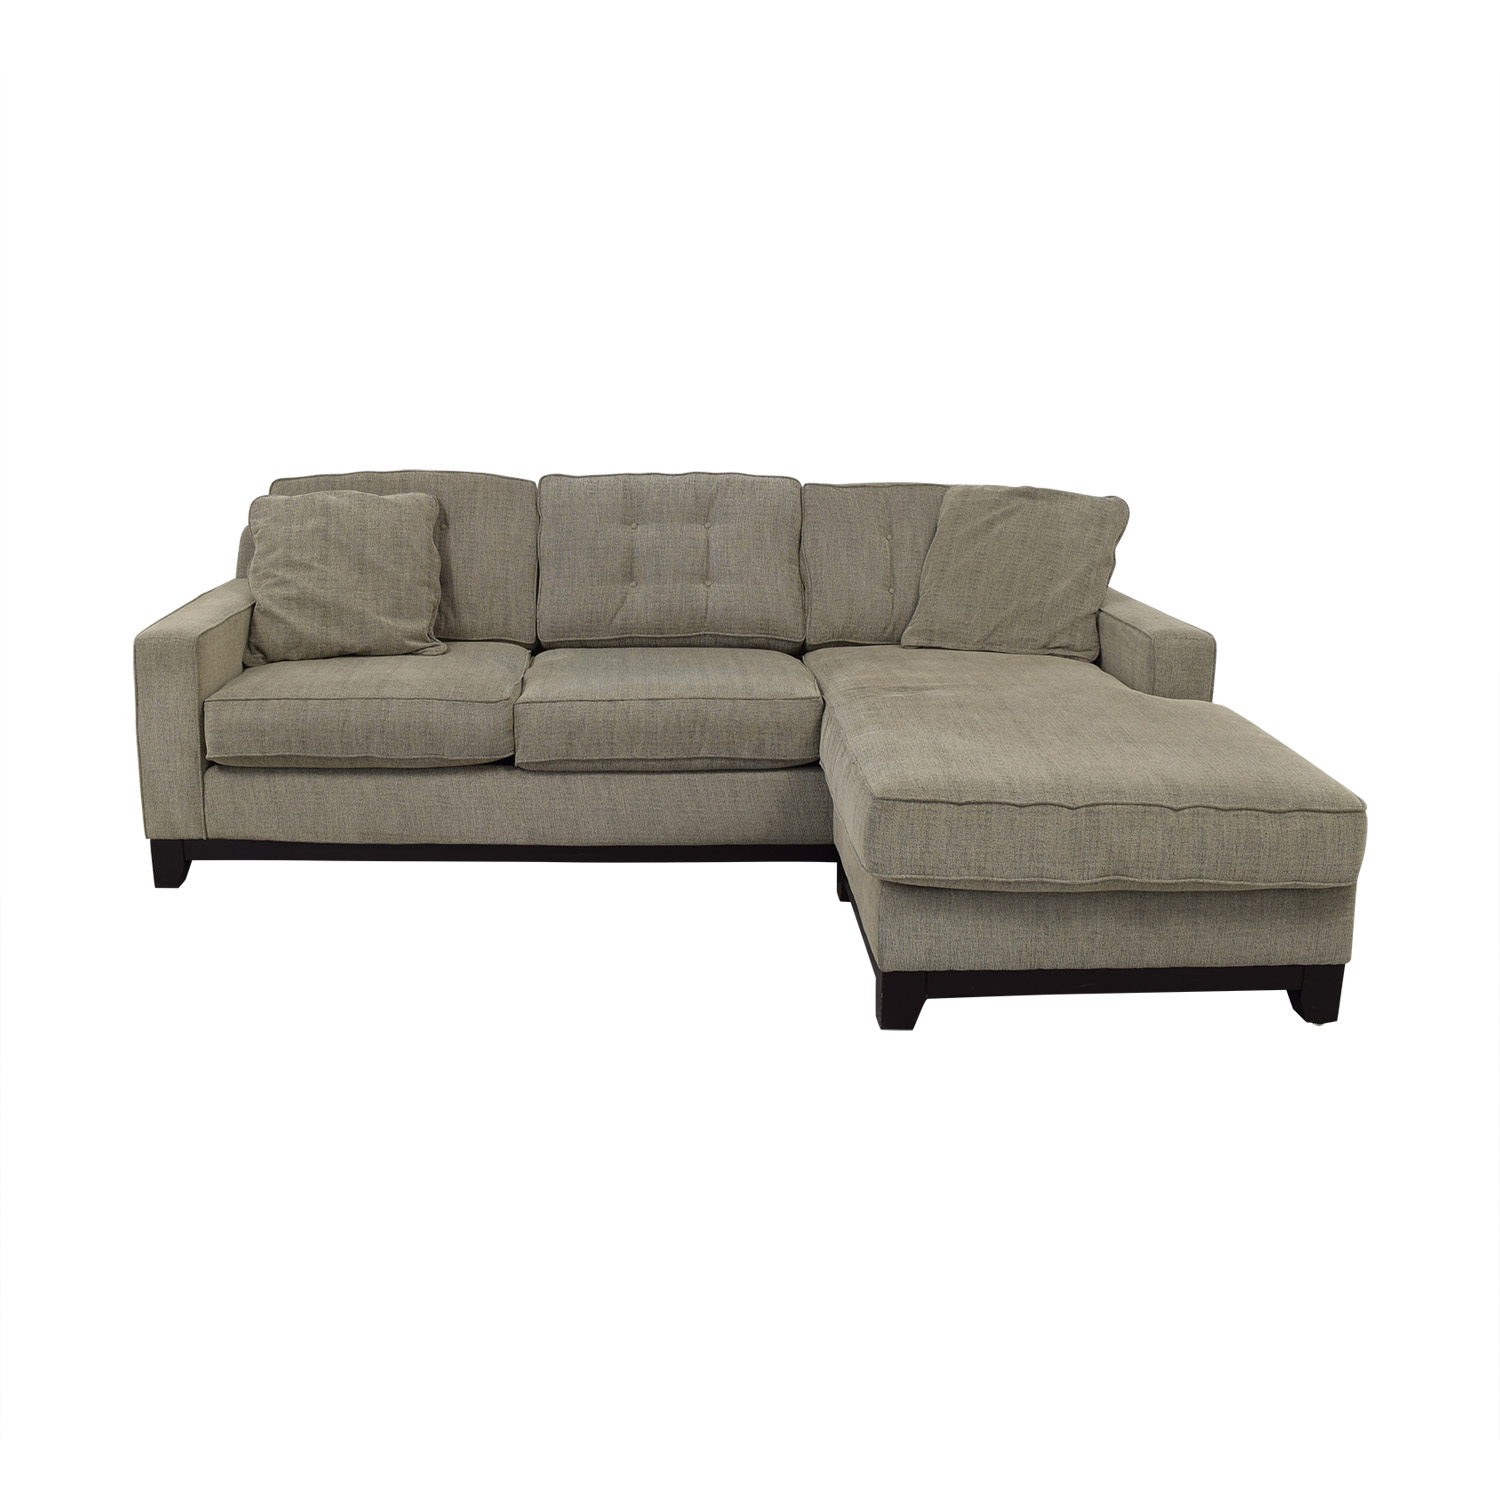 shop Macy's Grey Semi-Tufted Chaise Sectional Macy's Sofas